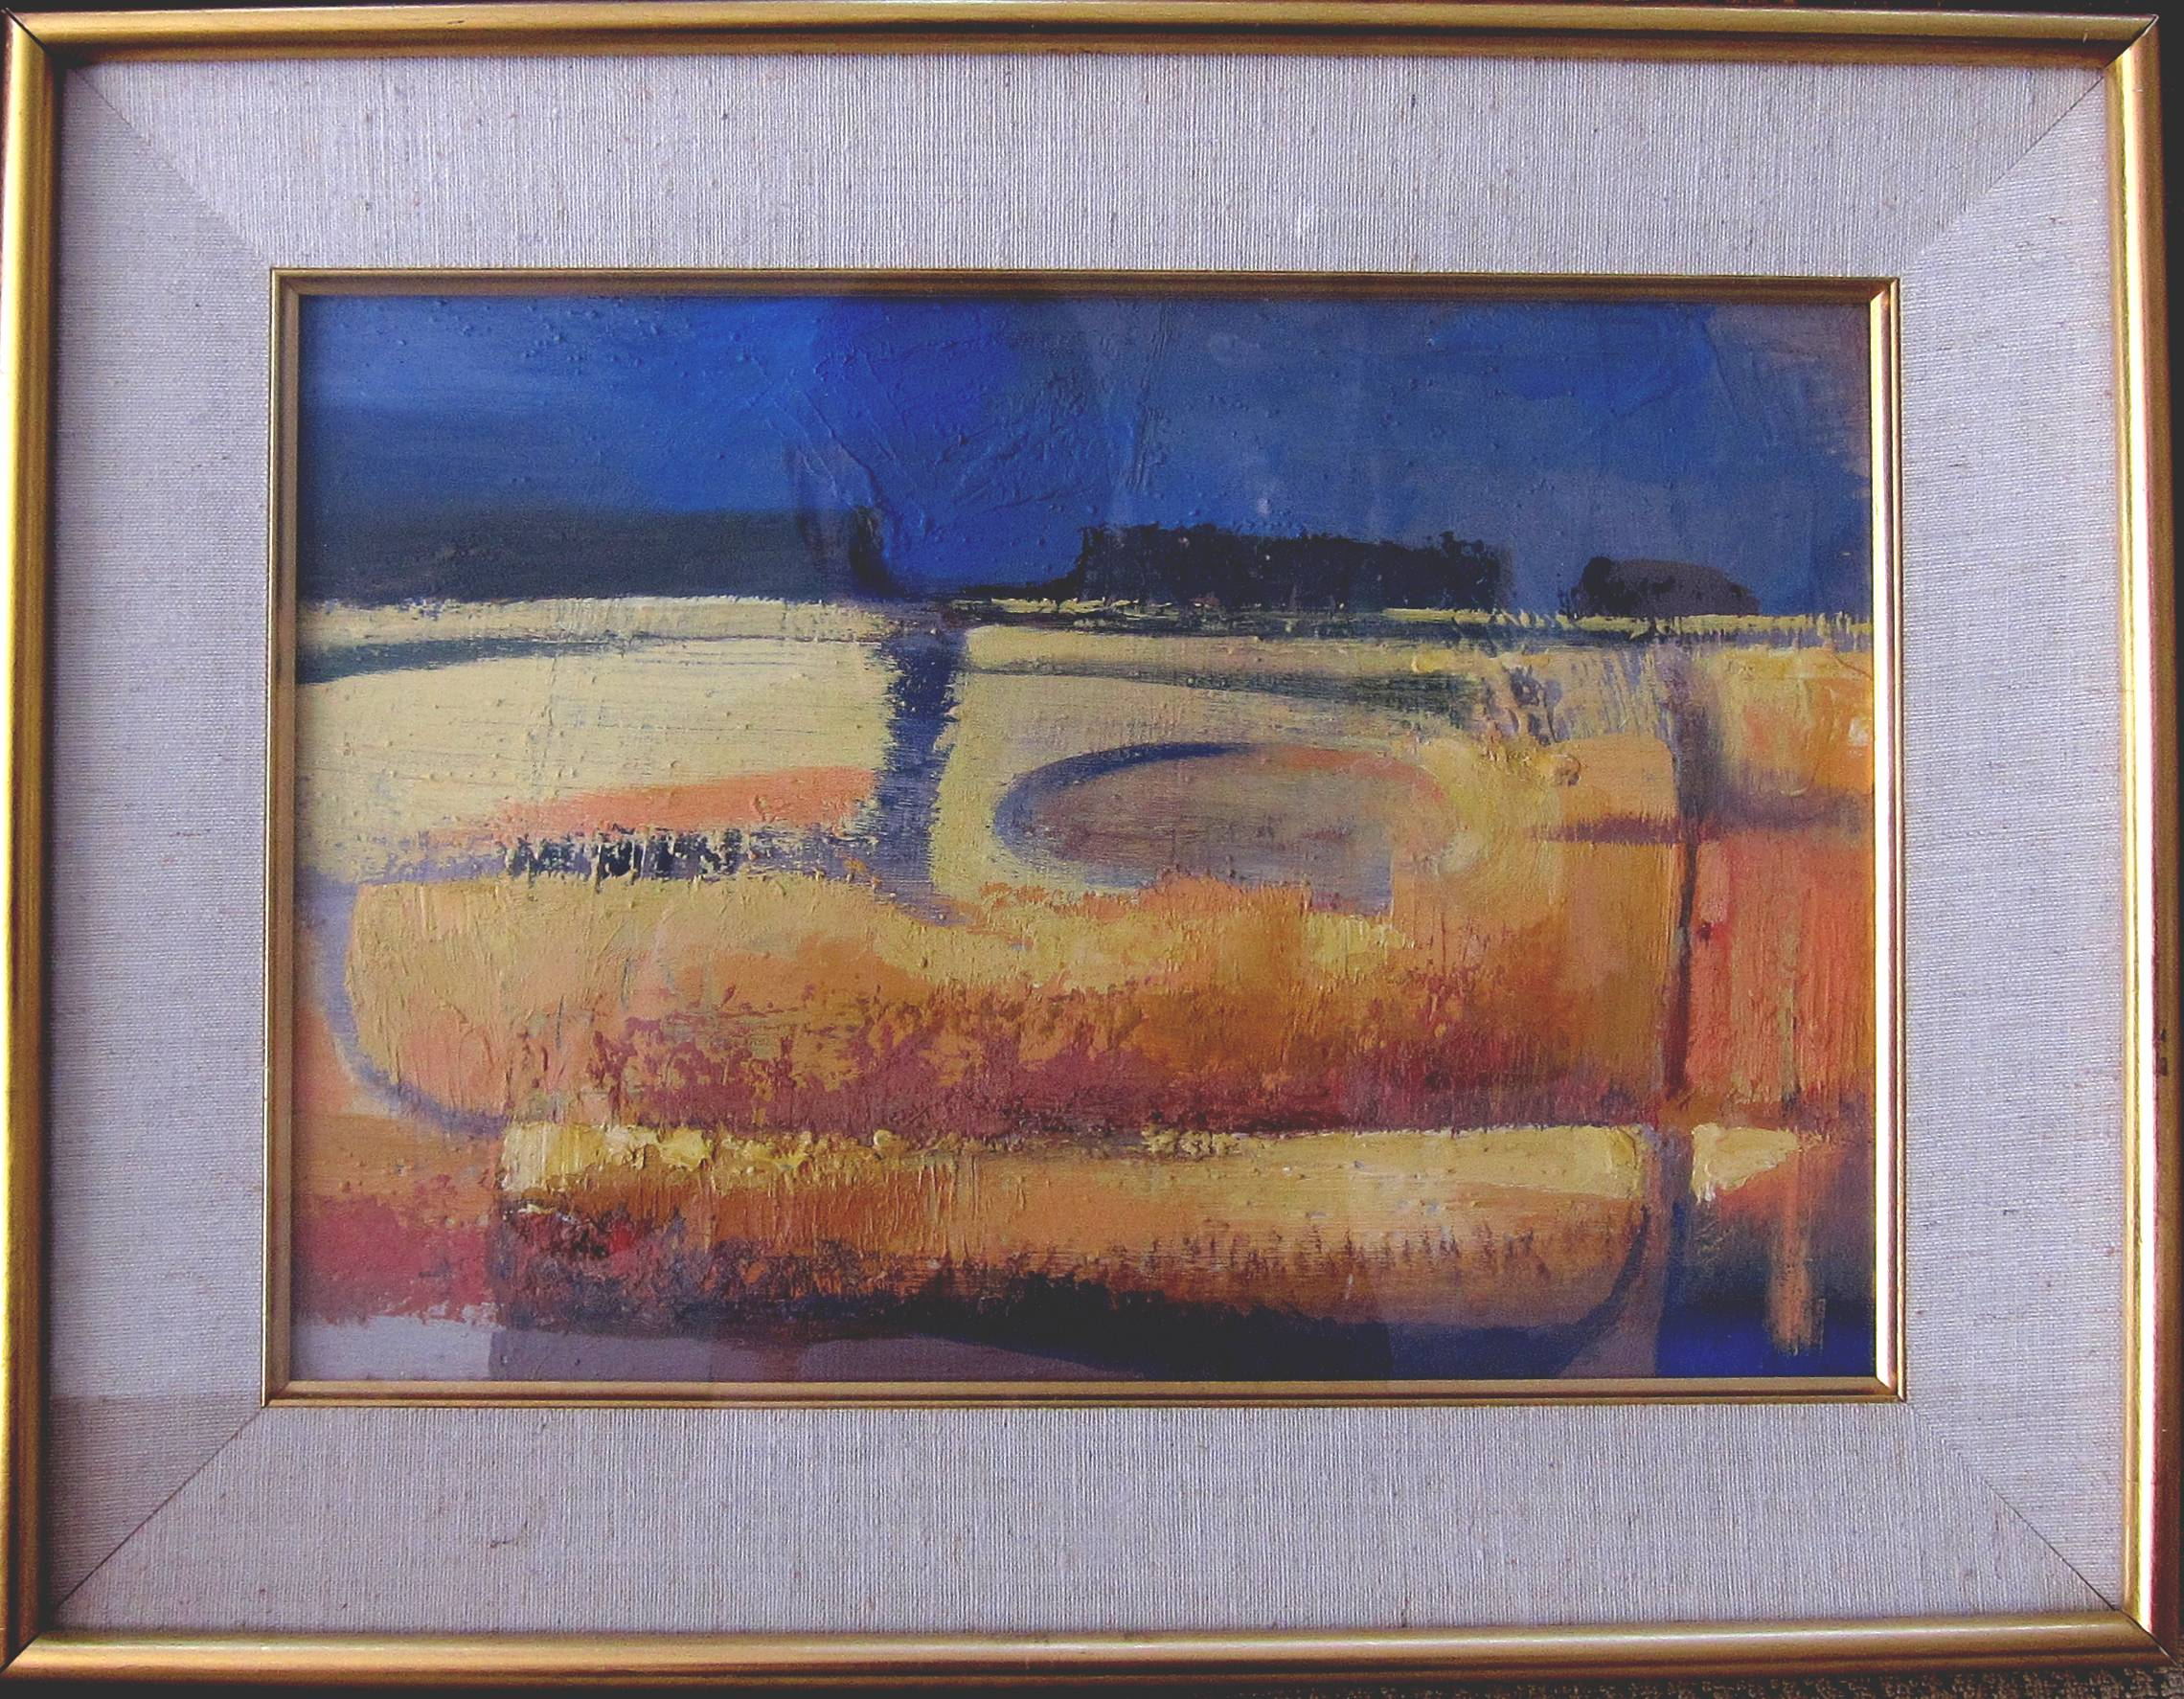 Lot 36 - MICHAEL AYRTON [1921-75]. Cornfield, 1961. Oil on board. 24 x 34 cm [overall including frame 33 x 43